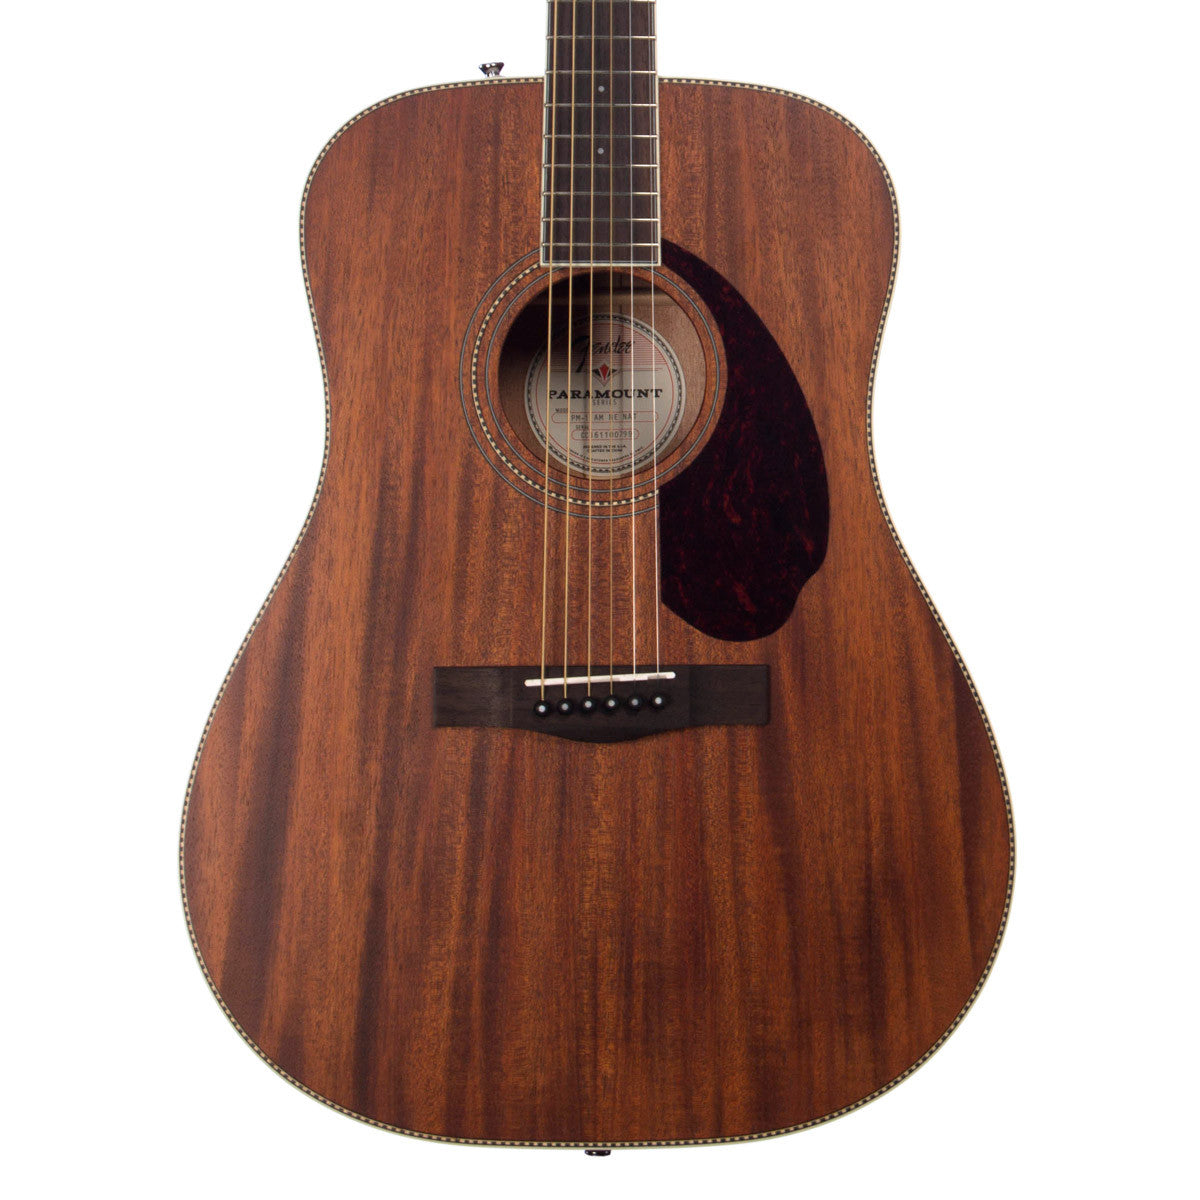 837b36ae485 ... Dreadnought All-Mahogany Acoustic Guitar with Case - NEW. Tap to expand